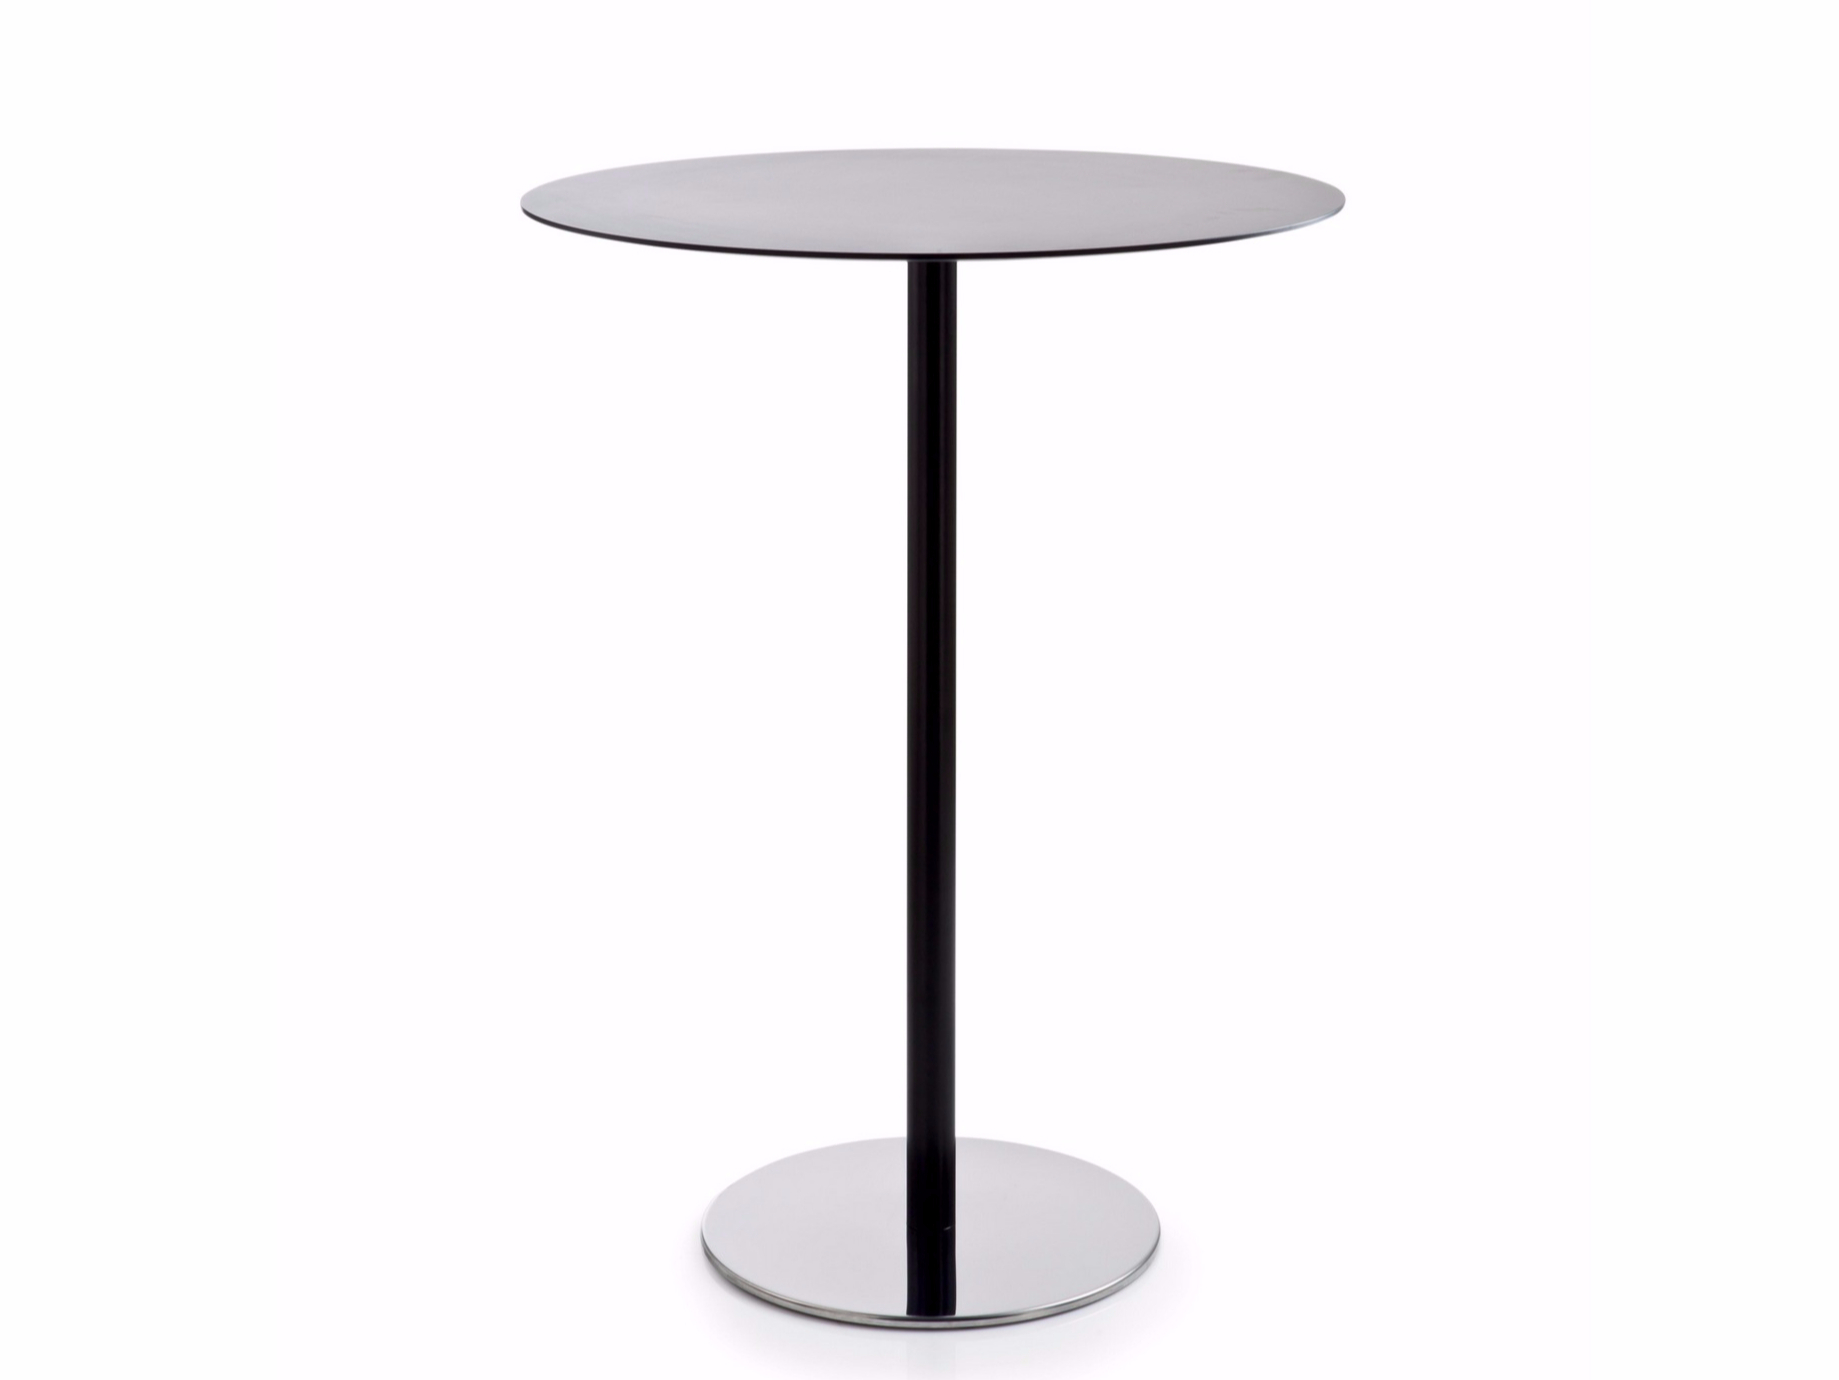 round hpl high table passepartout  high table passepartout  - round hpl high table passepartout  high table passepartout collection bymagis